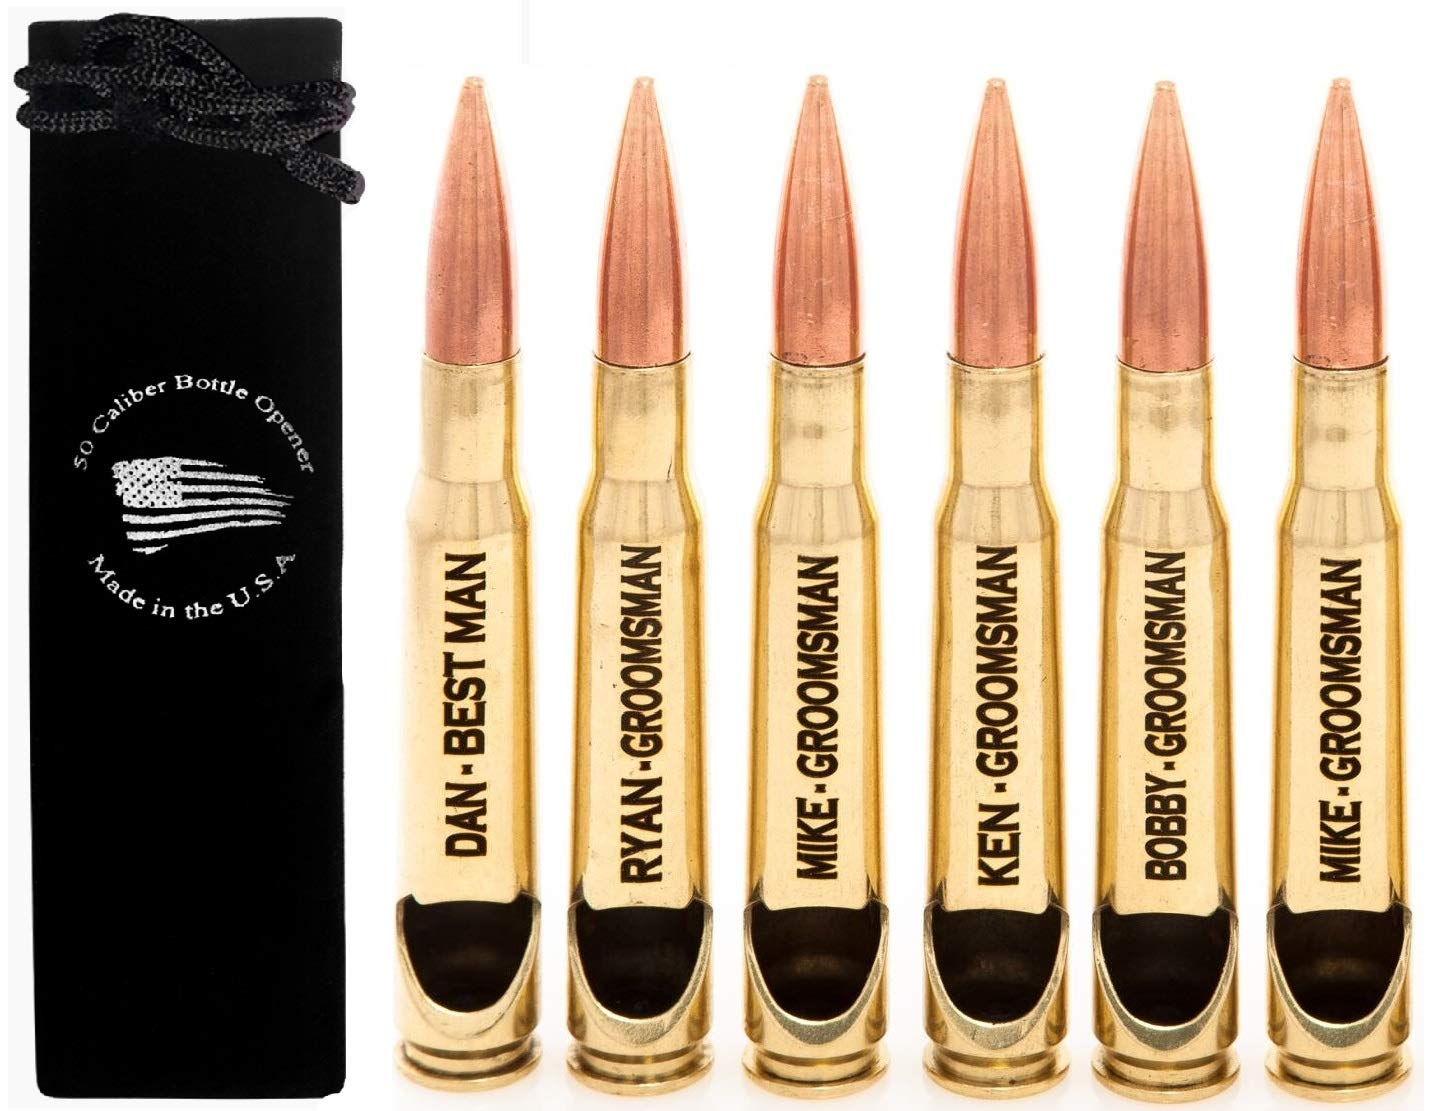 Personalized Engraved 50 Caliber BMG Bottle Opener Real Authentic Polished Brass - Groomsman Set of 6 - Made in the USA (Black Bag)